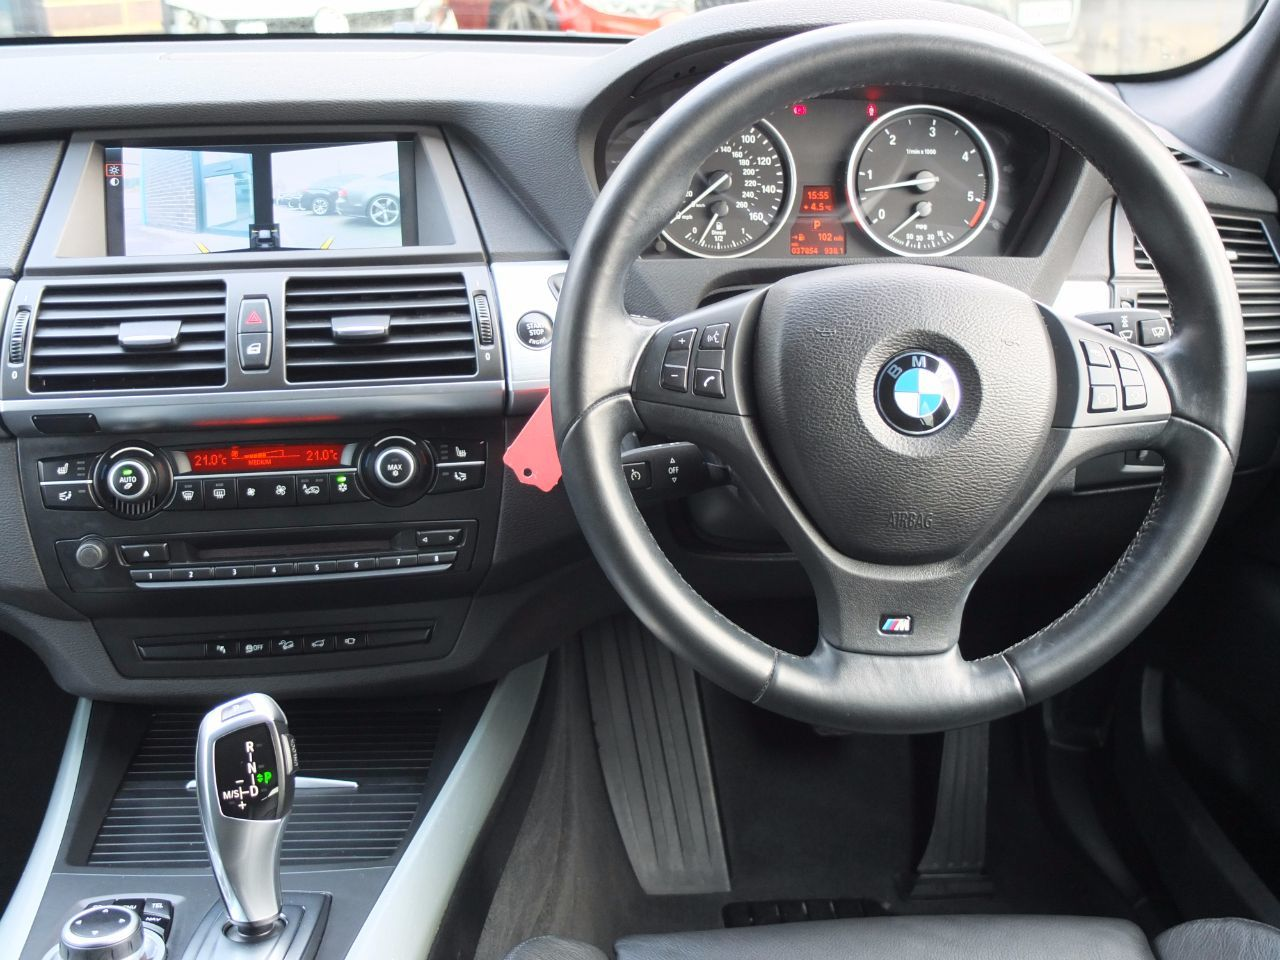 BMW X5 3.0 xDrive30d M Sport Auto Estate Diesel Carbon Black Metallic